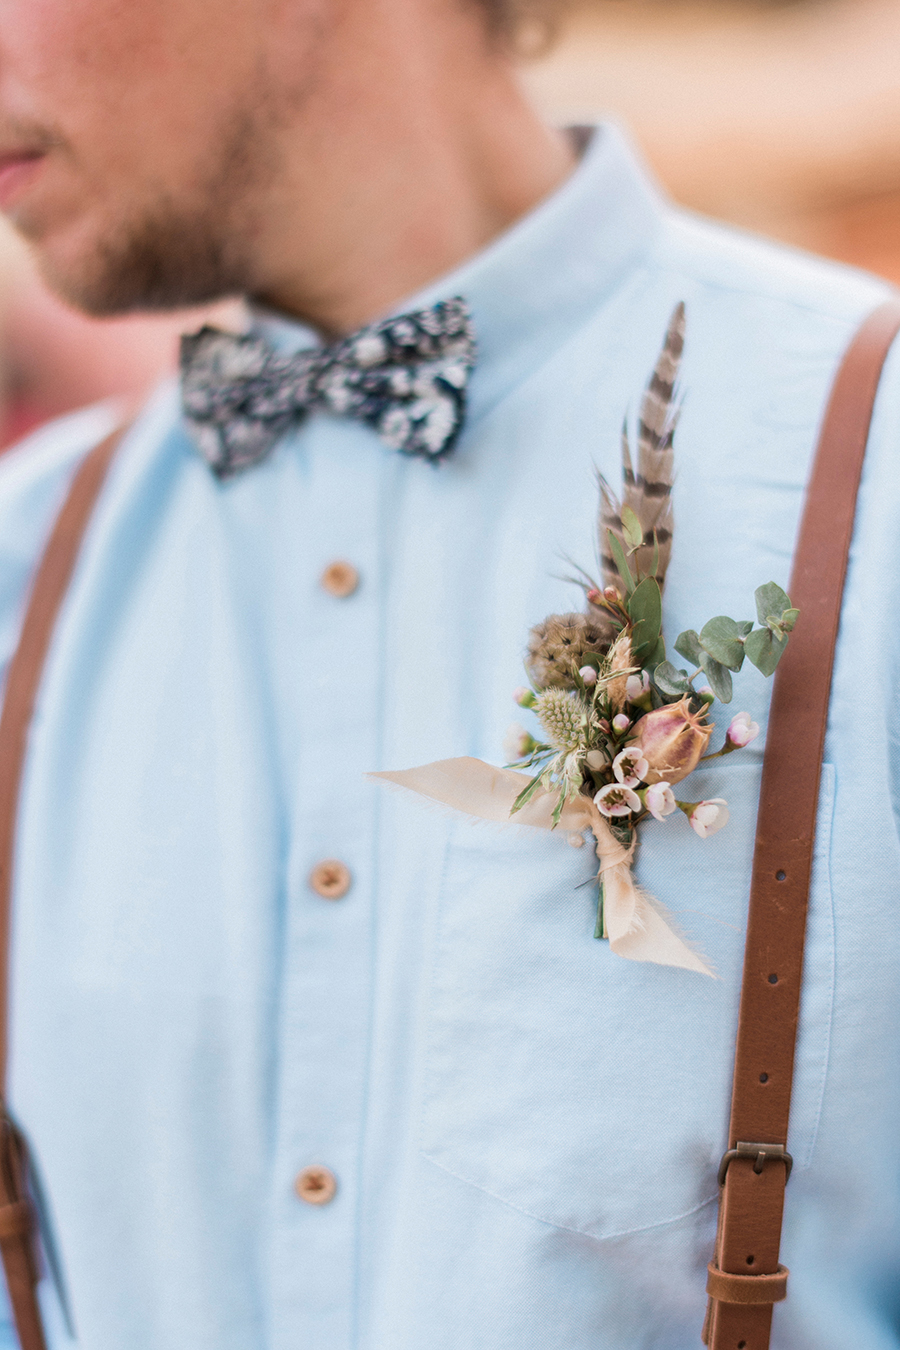 Dreamy boho wedding at Houchins Farm with images by Kathryn Hopkins Photography (26)